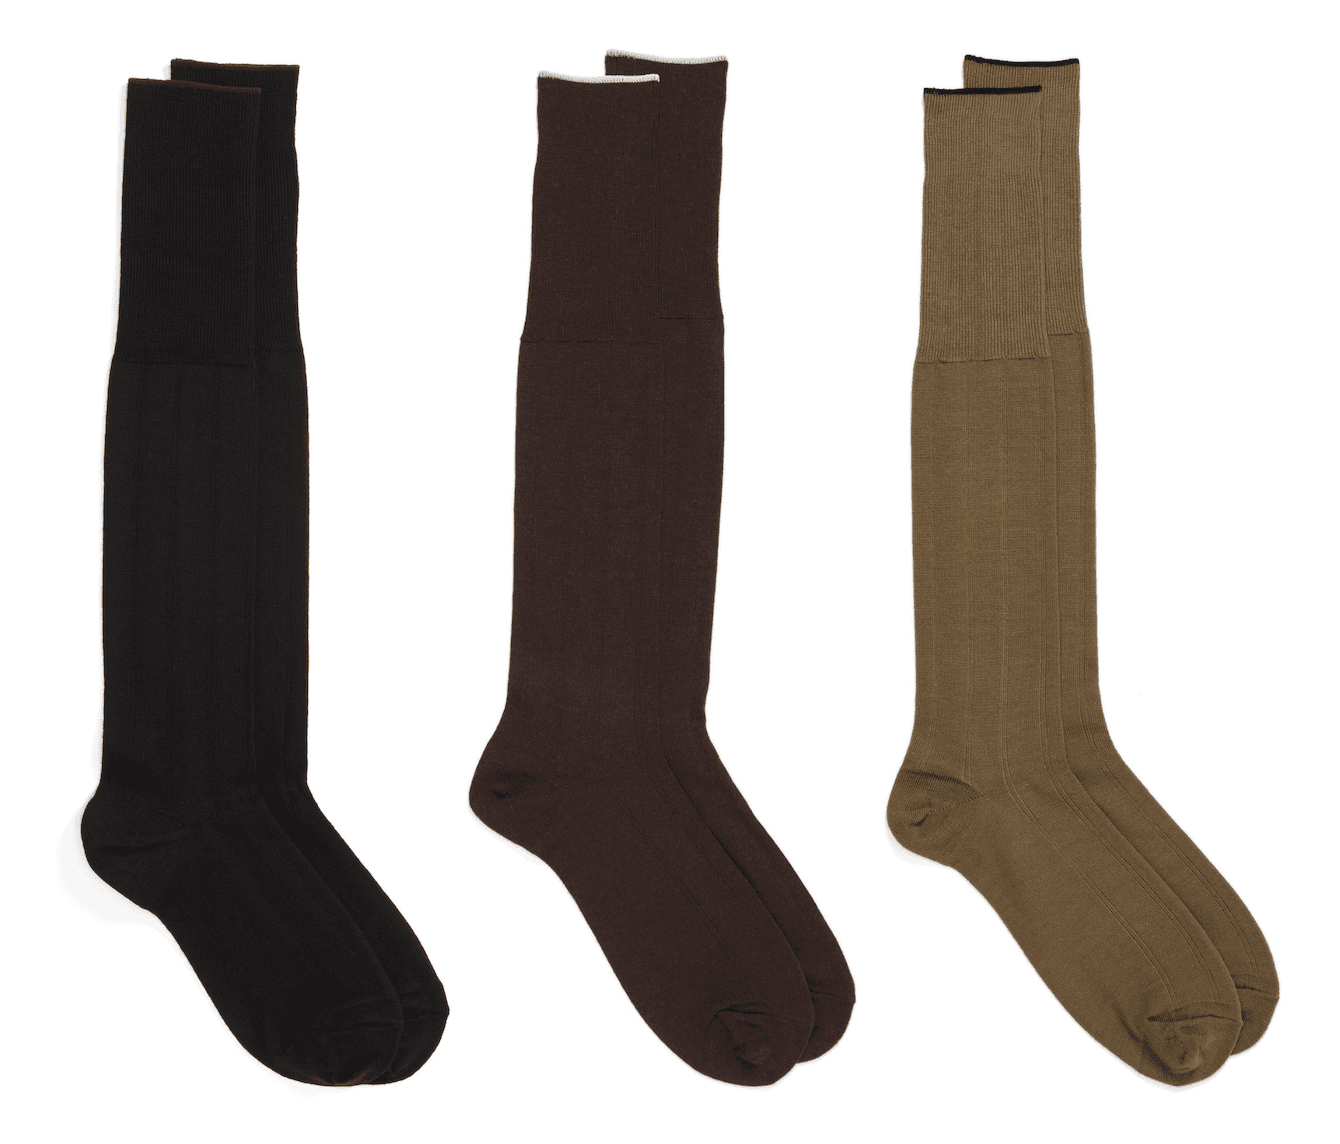 Over the calf socks for men